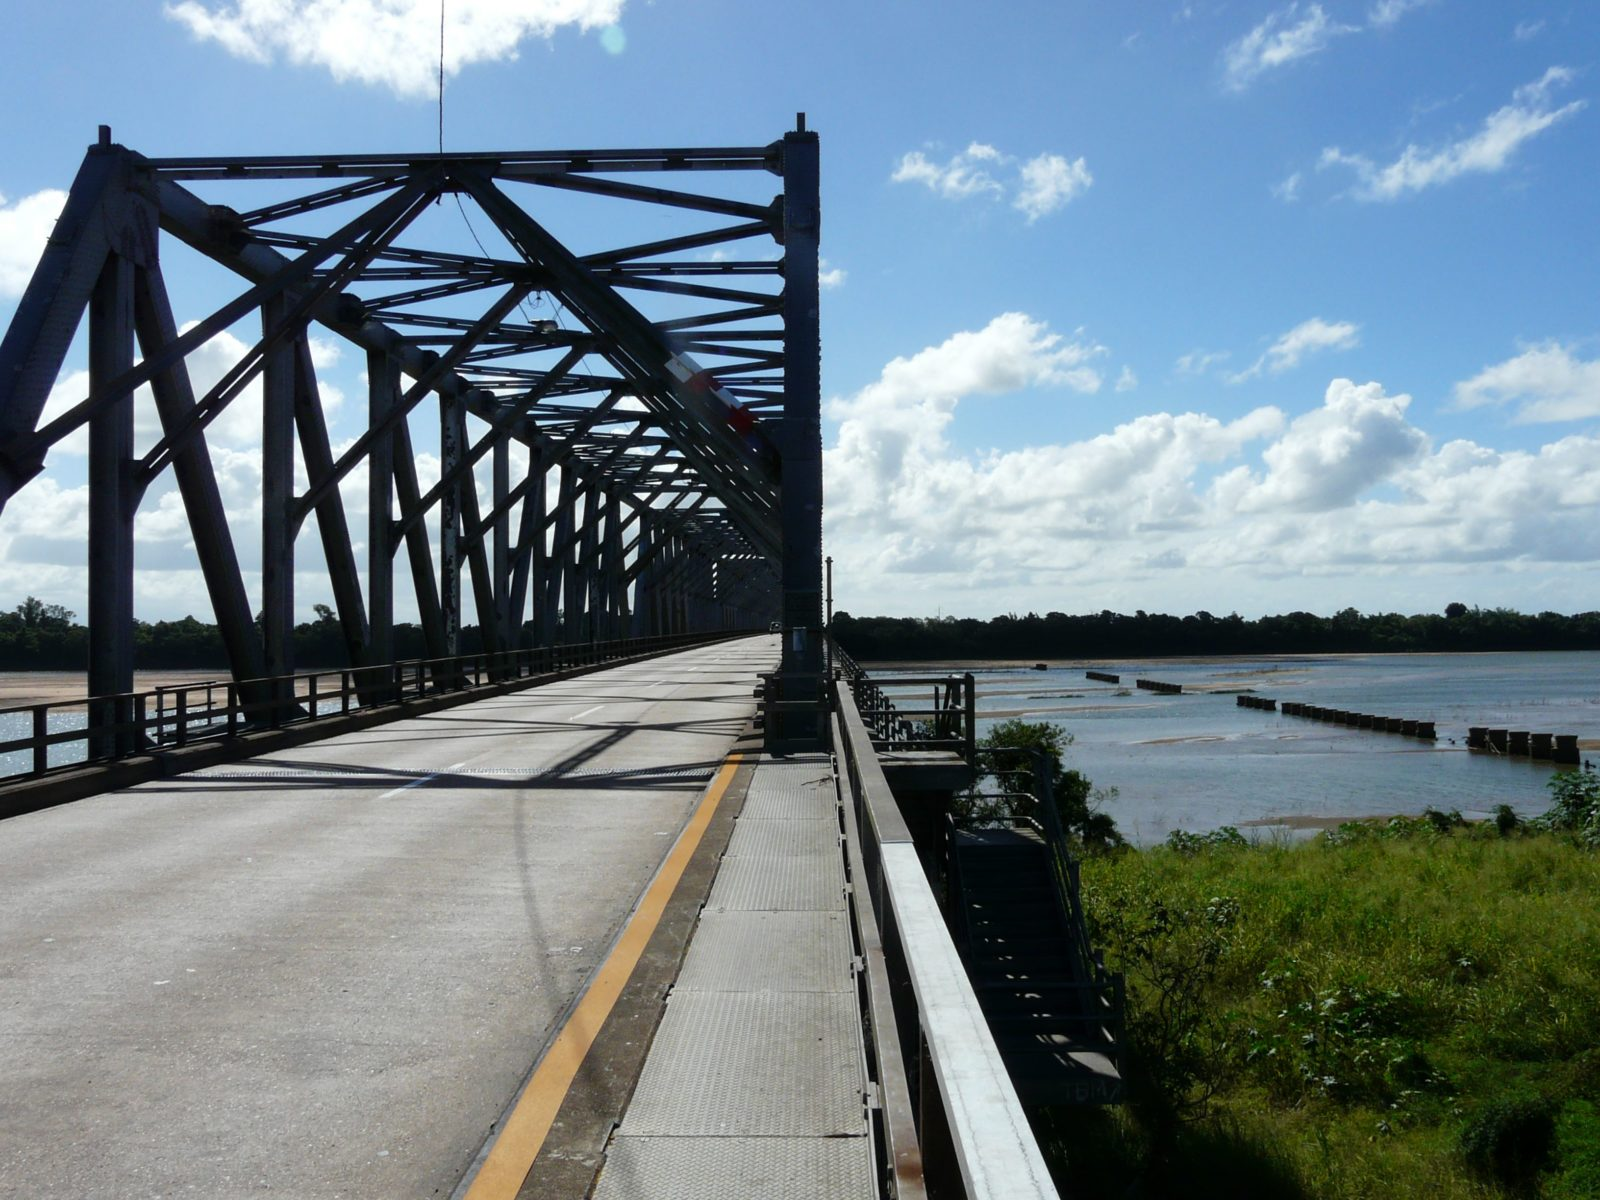 The Burdekin River Bridge is a road and rail bridge which also has a pedestrian walkway. It took ten years to complete, and was opened in 1957.